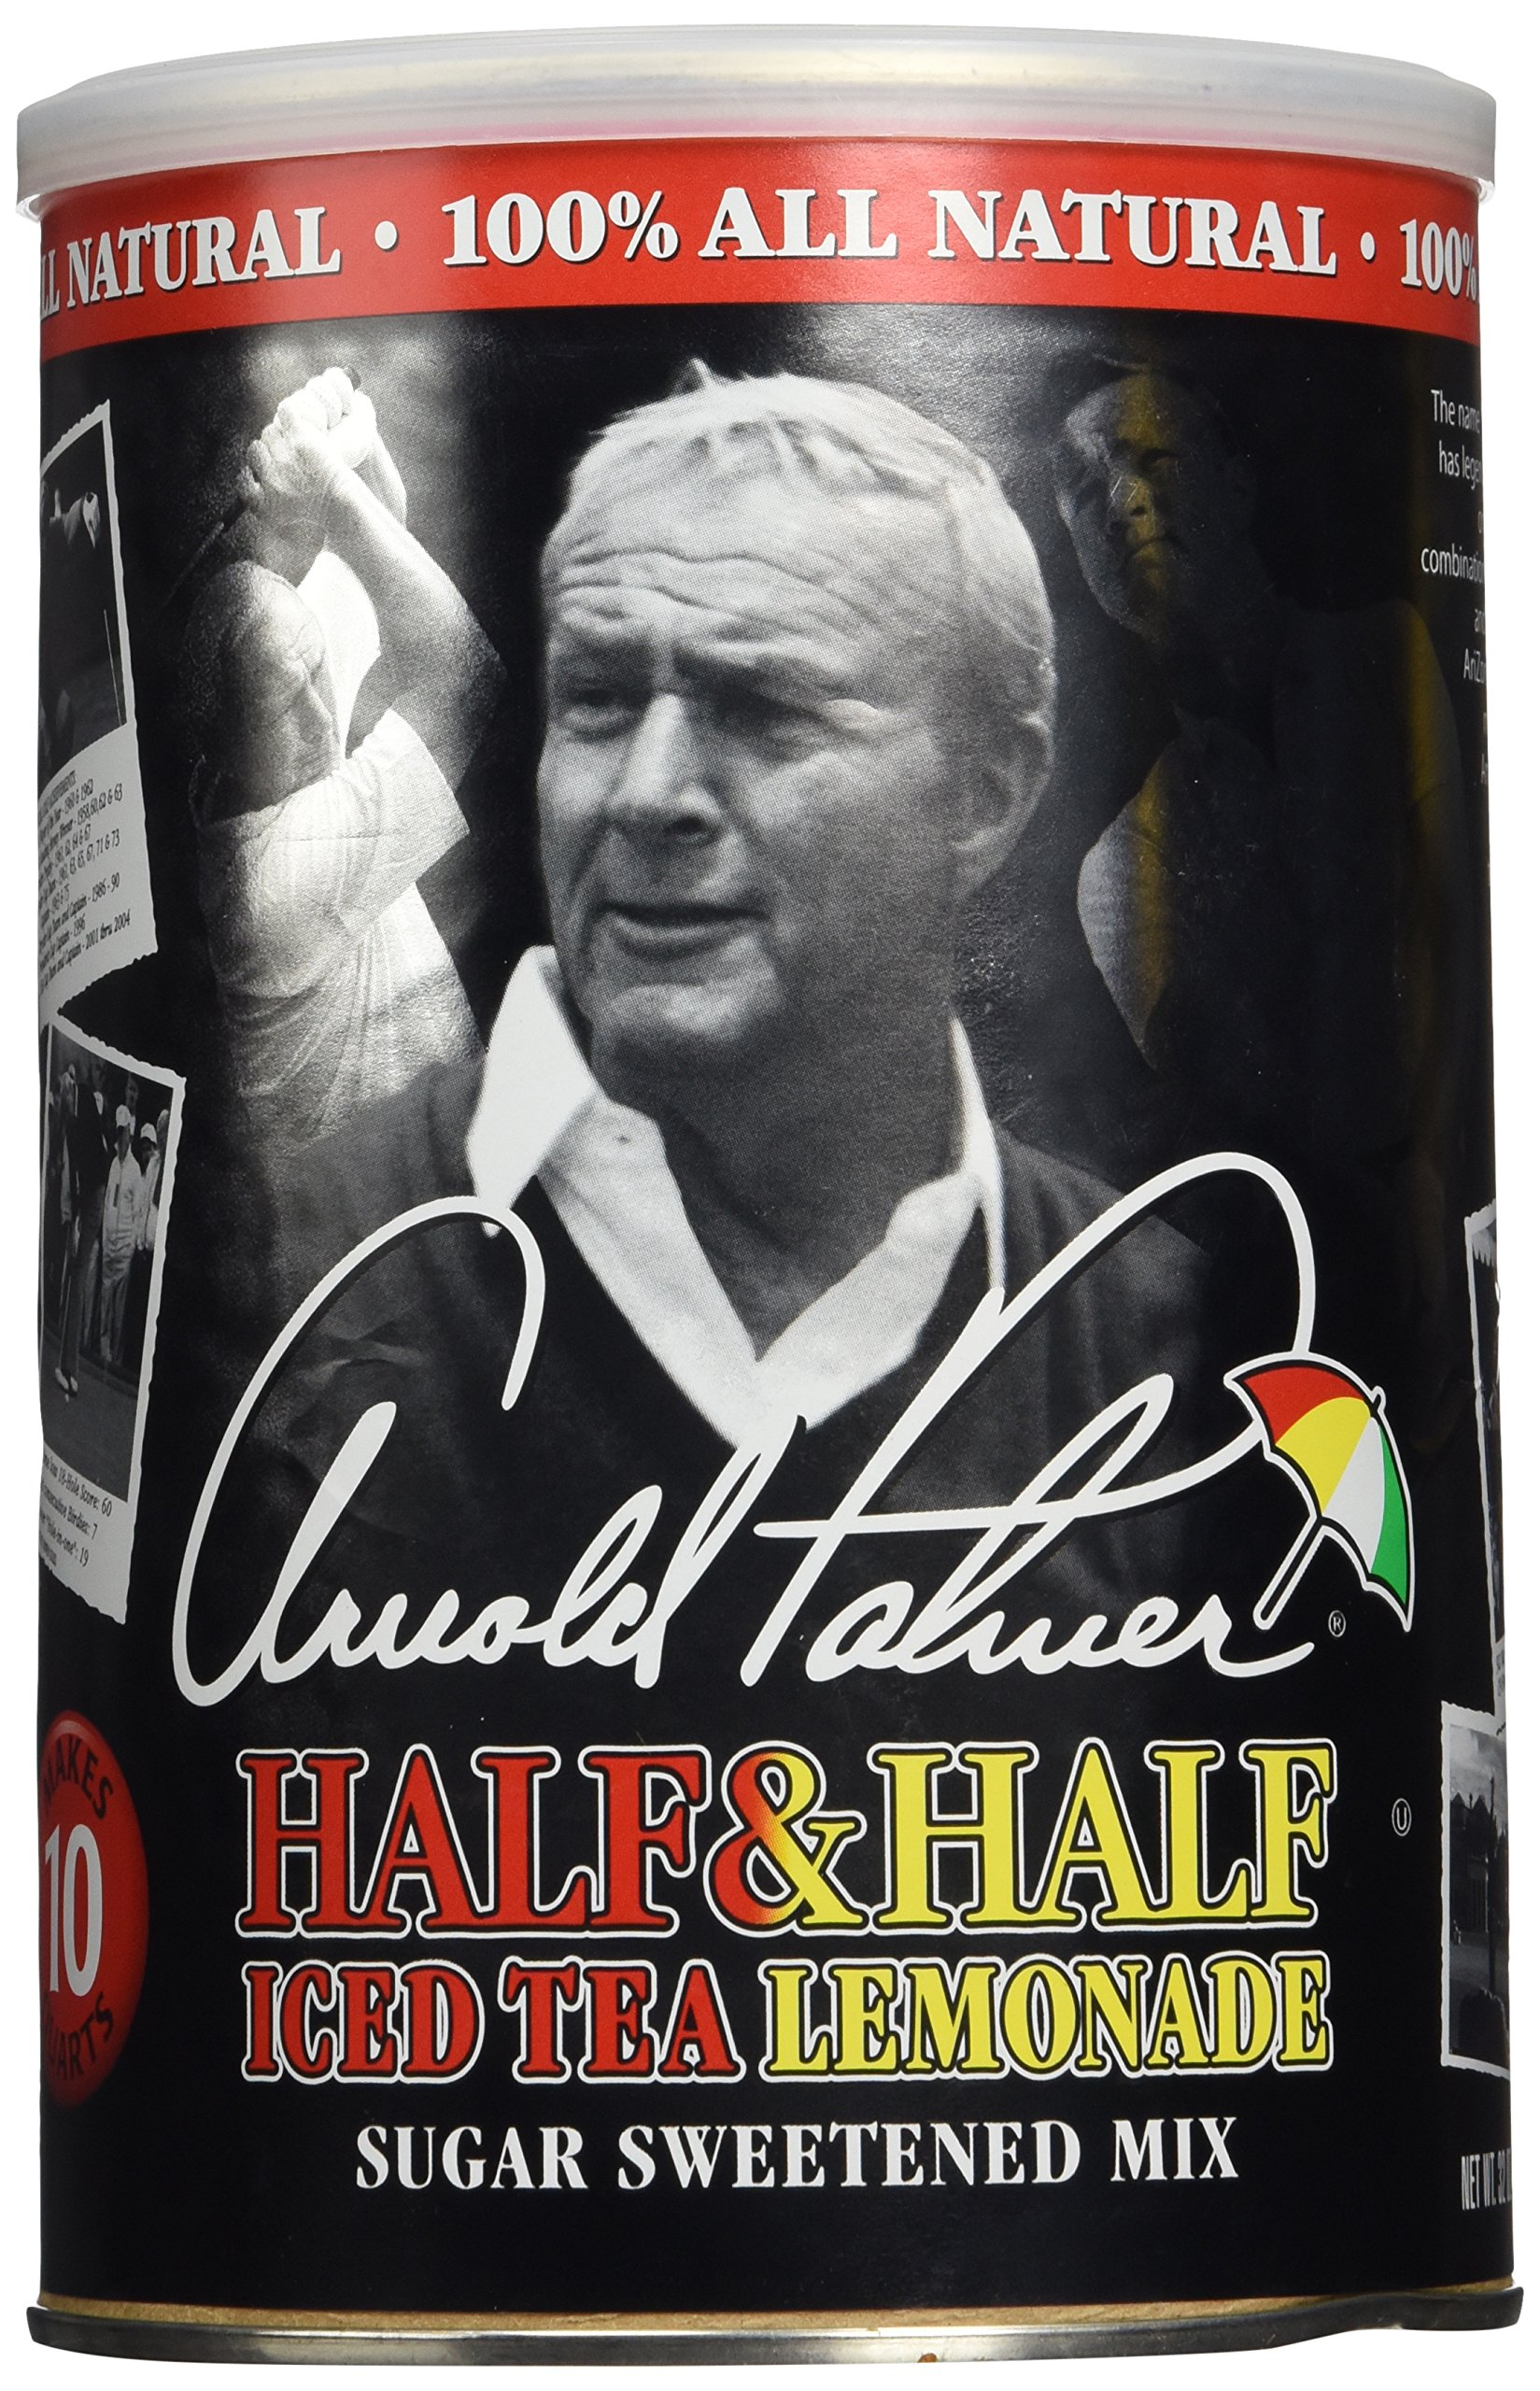 AriZona Arnold Palmer Half & Half Ice Tea Lemonade Drink Mix, (Makes 10 Quarts) 32 Ounce Canister (Pack of 2) by Arizona